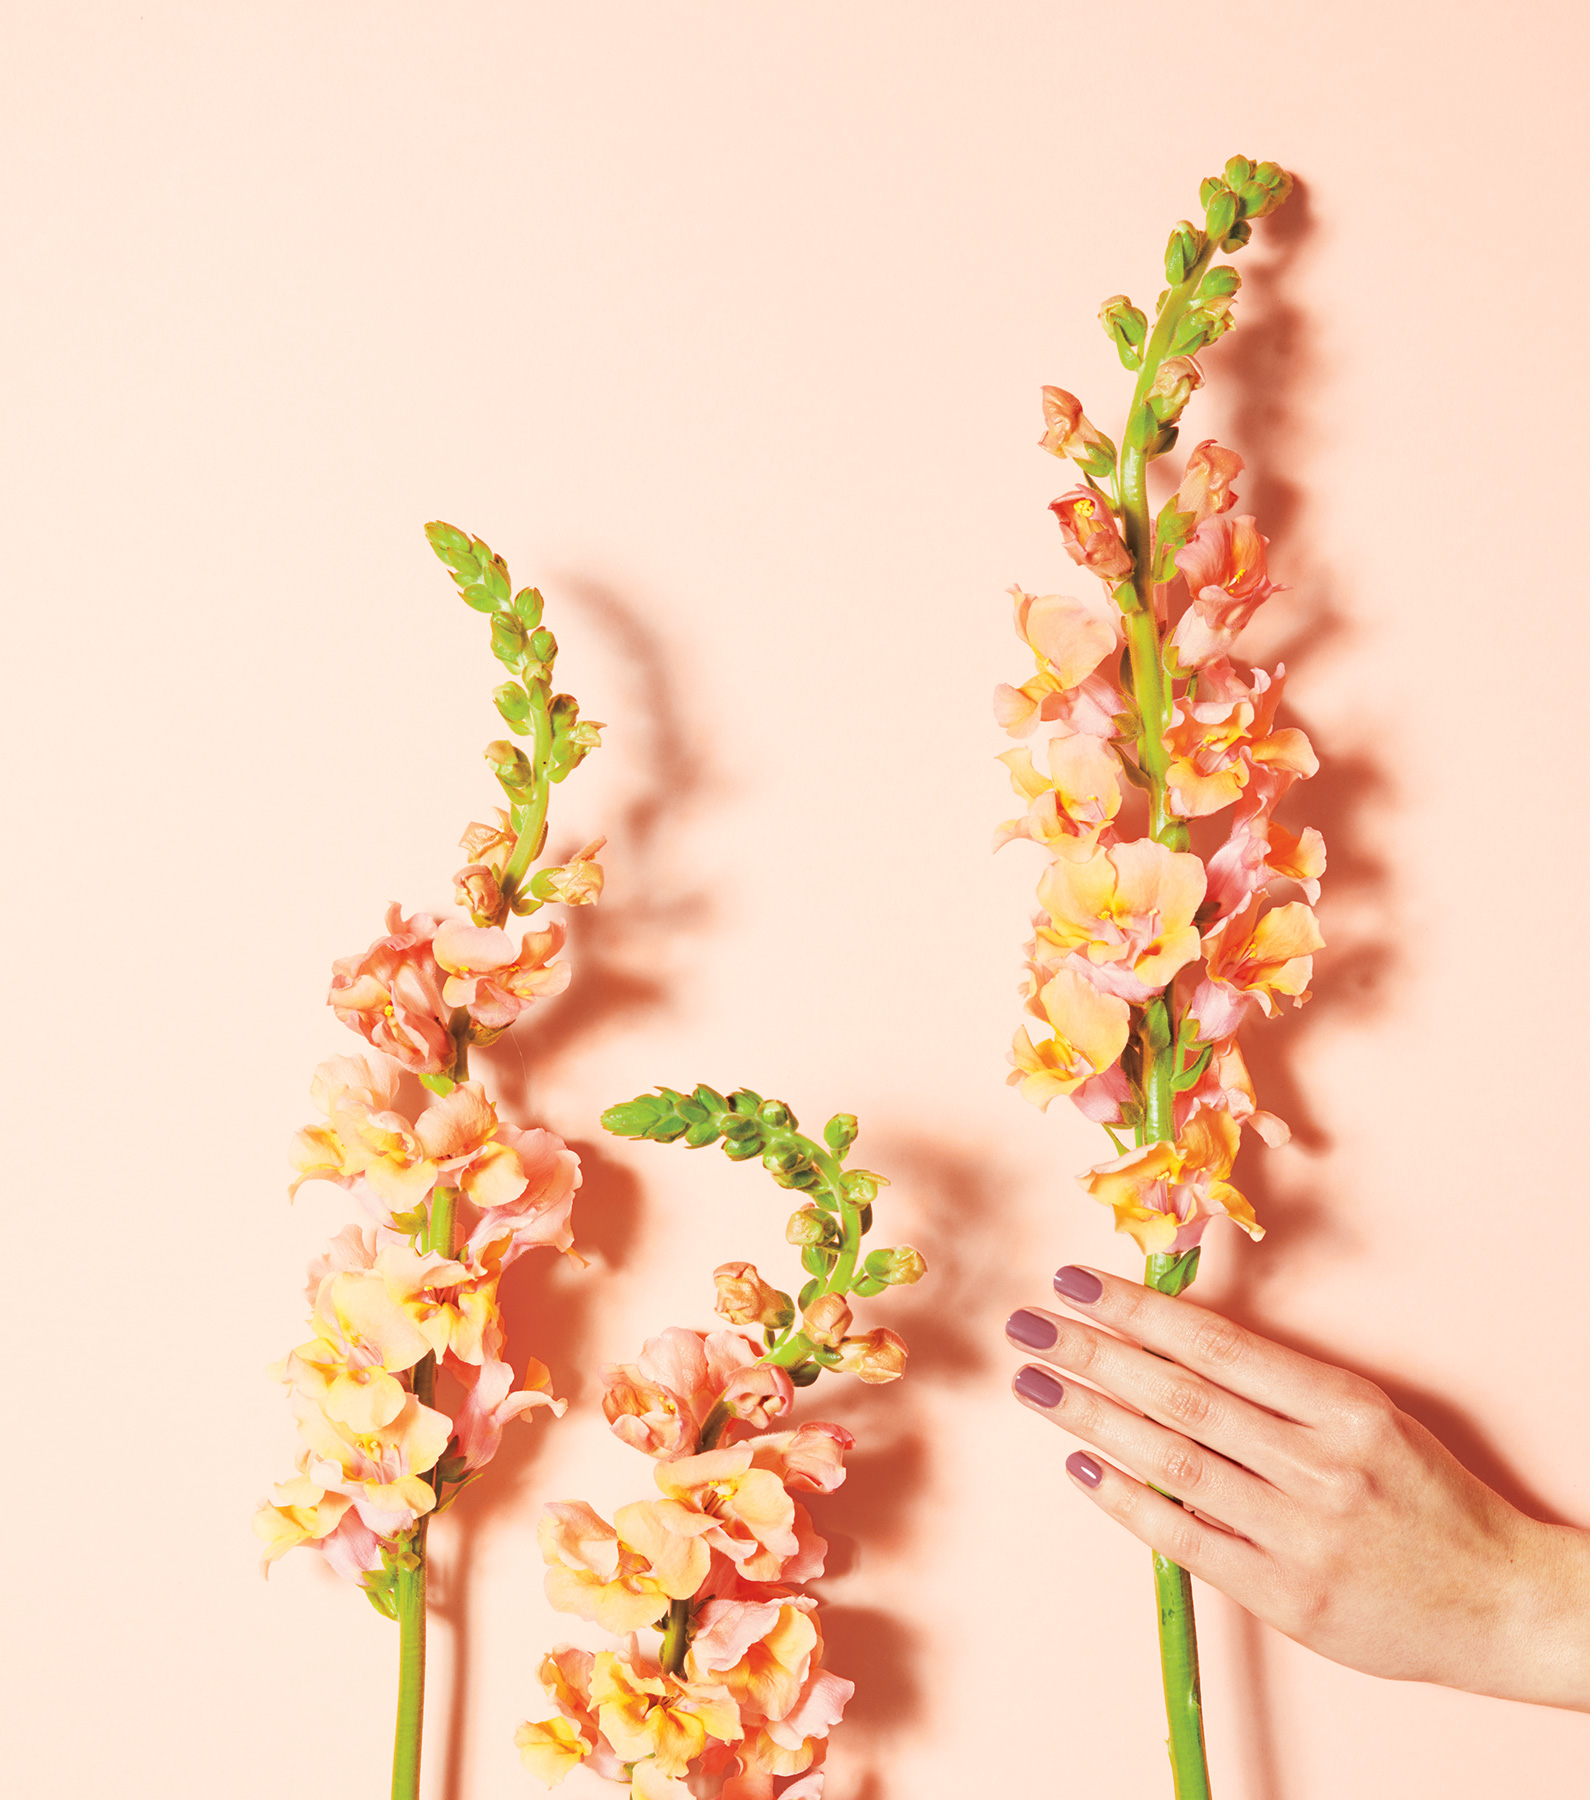 Manicured hand on light peach background